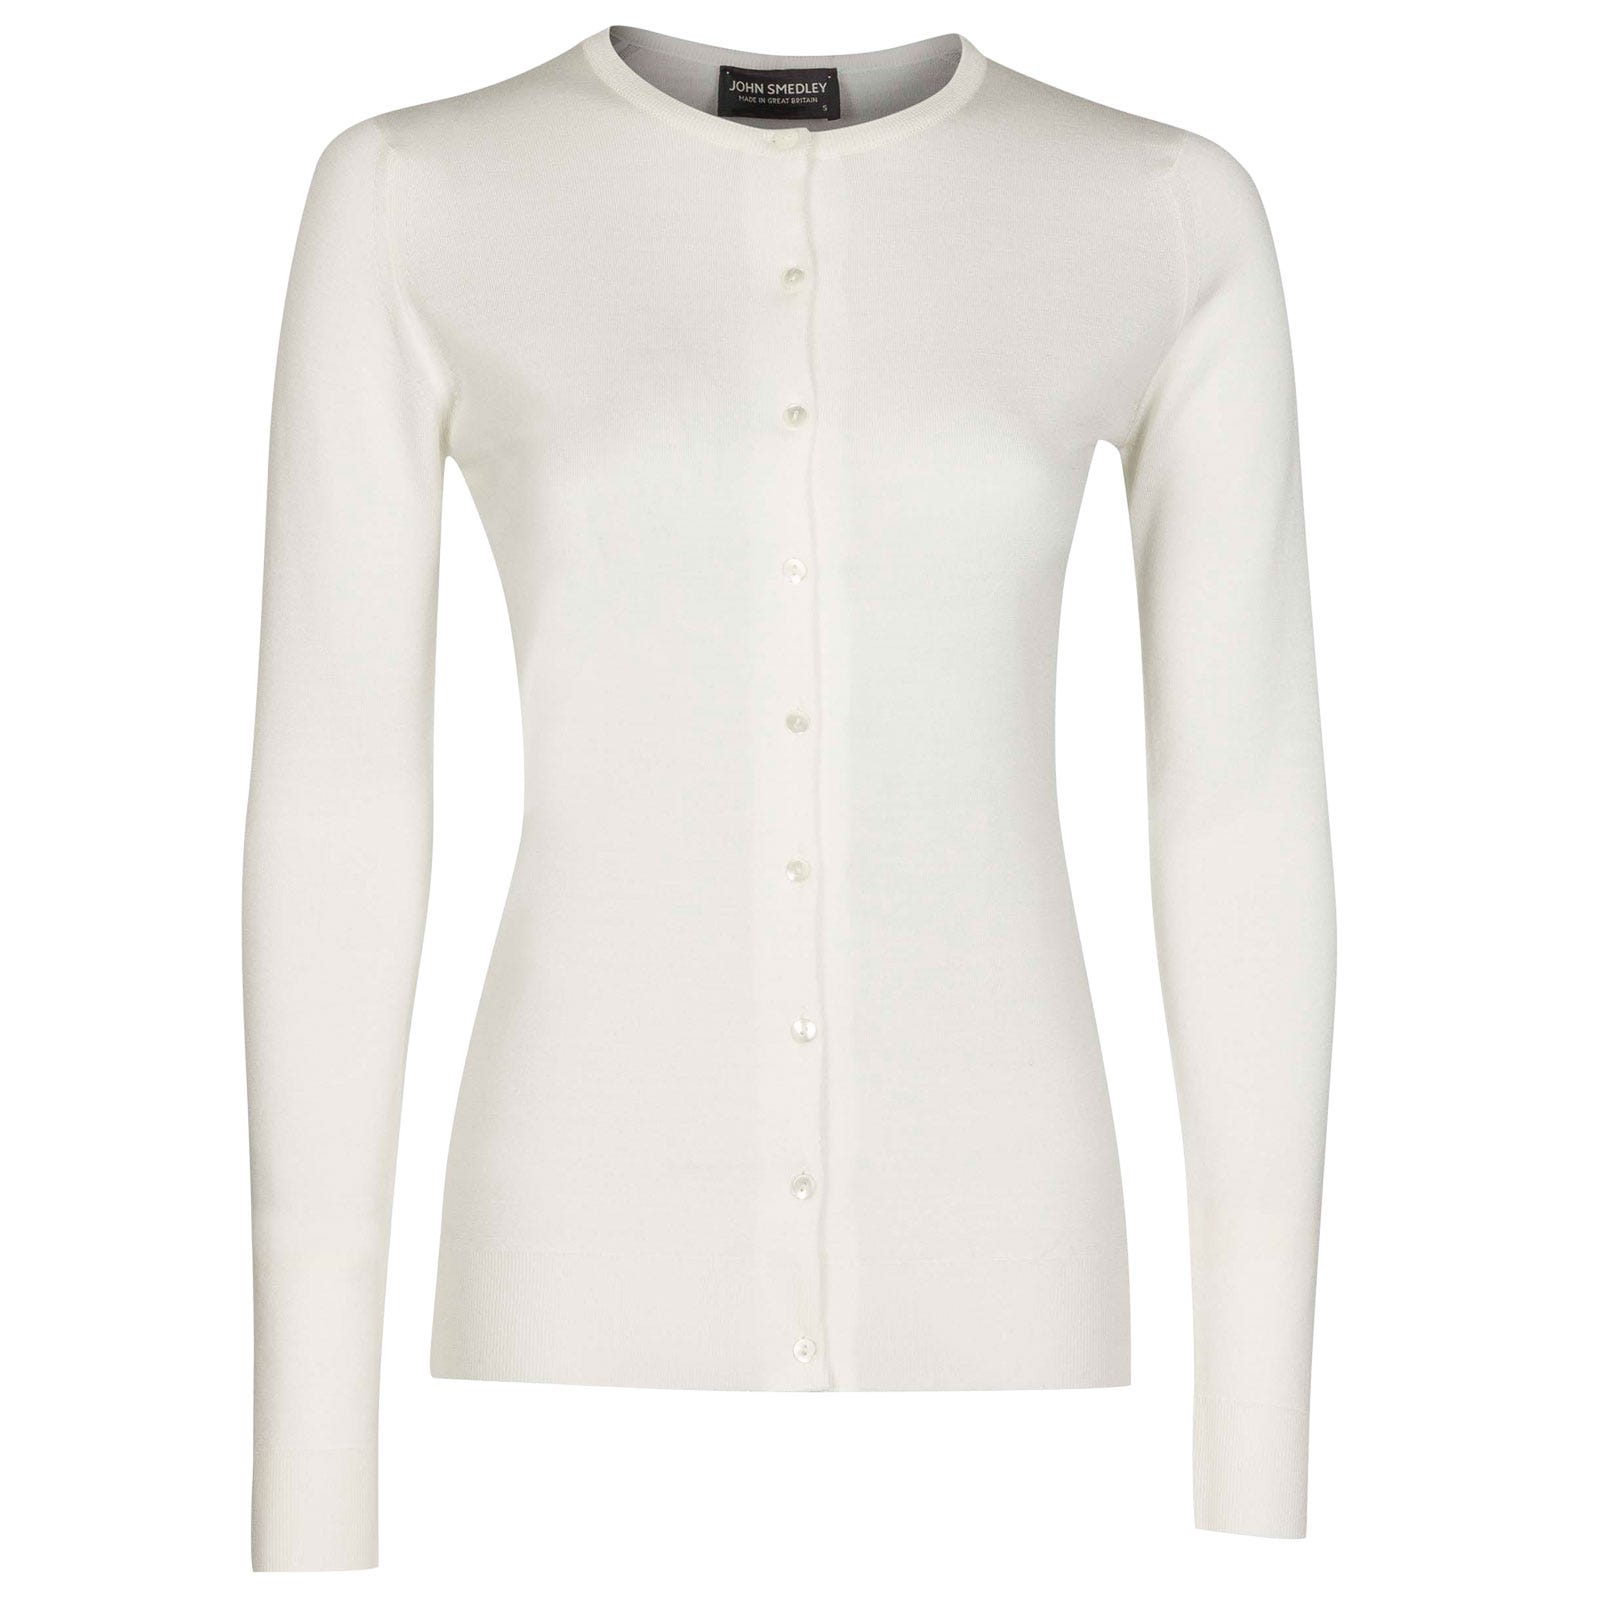 John Smedley Buttercup Merino Wool Cardigan in Snow White-M